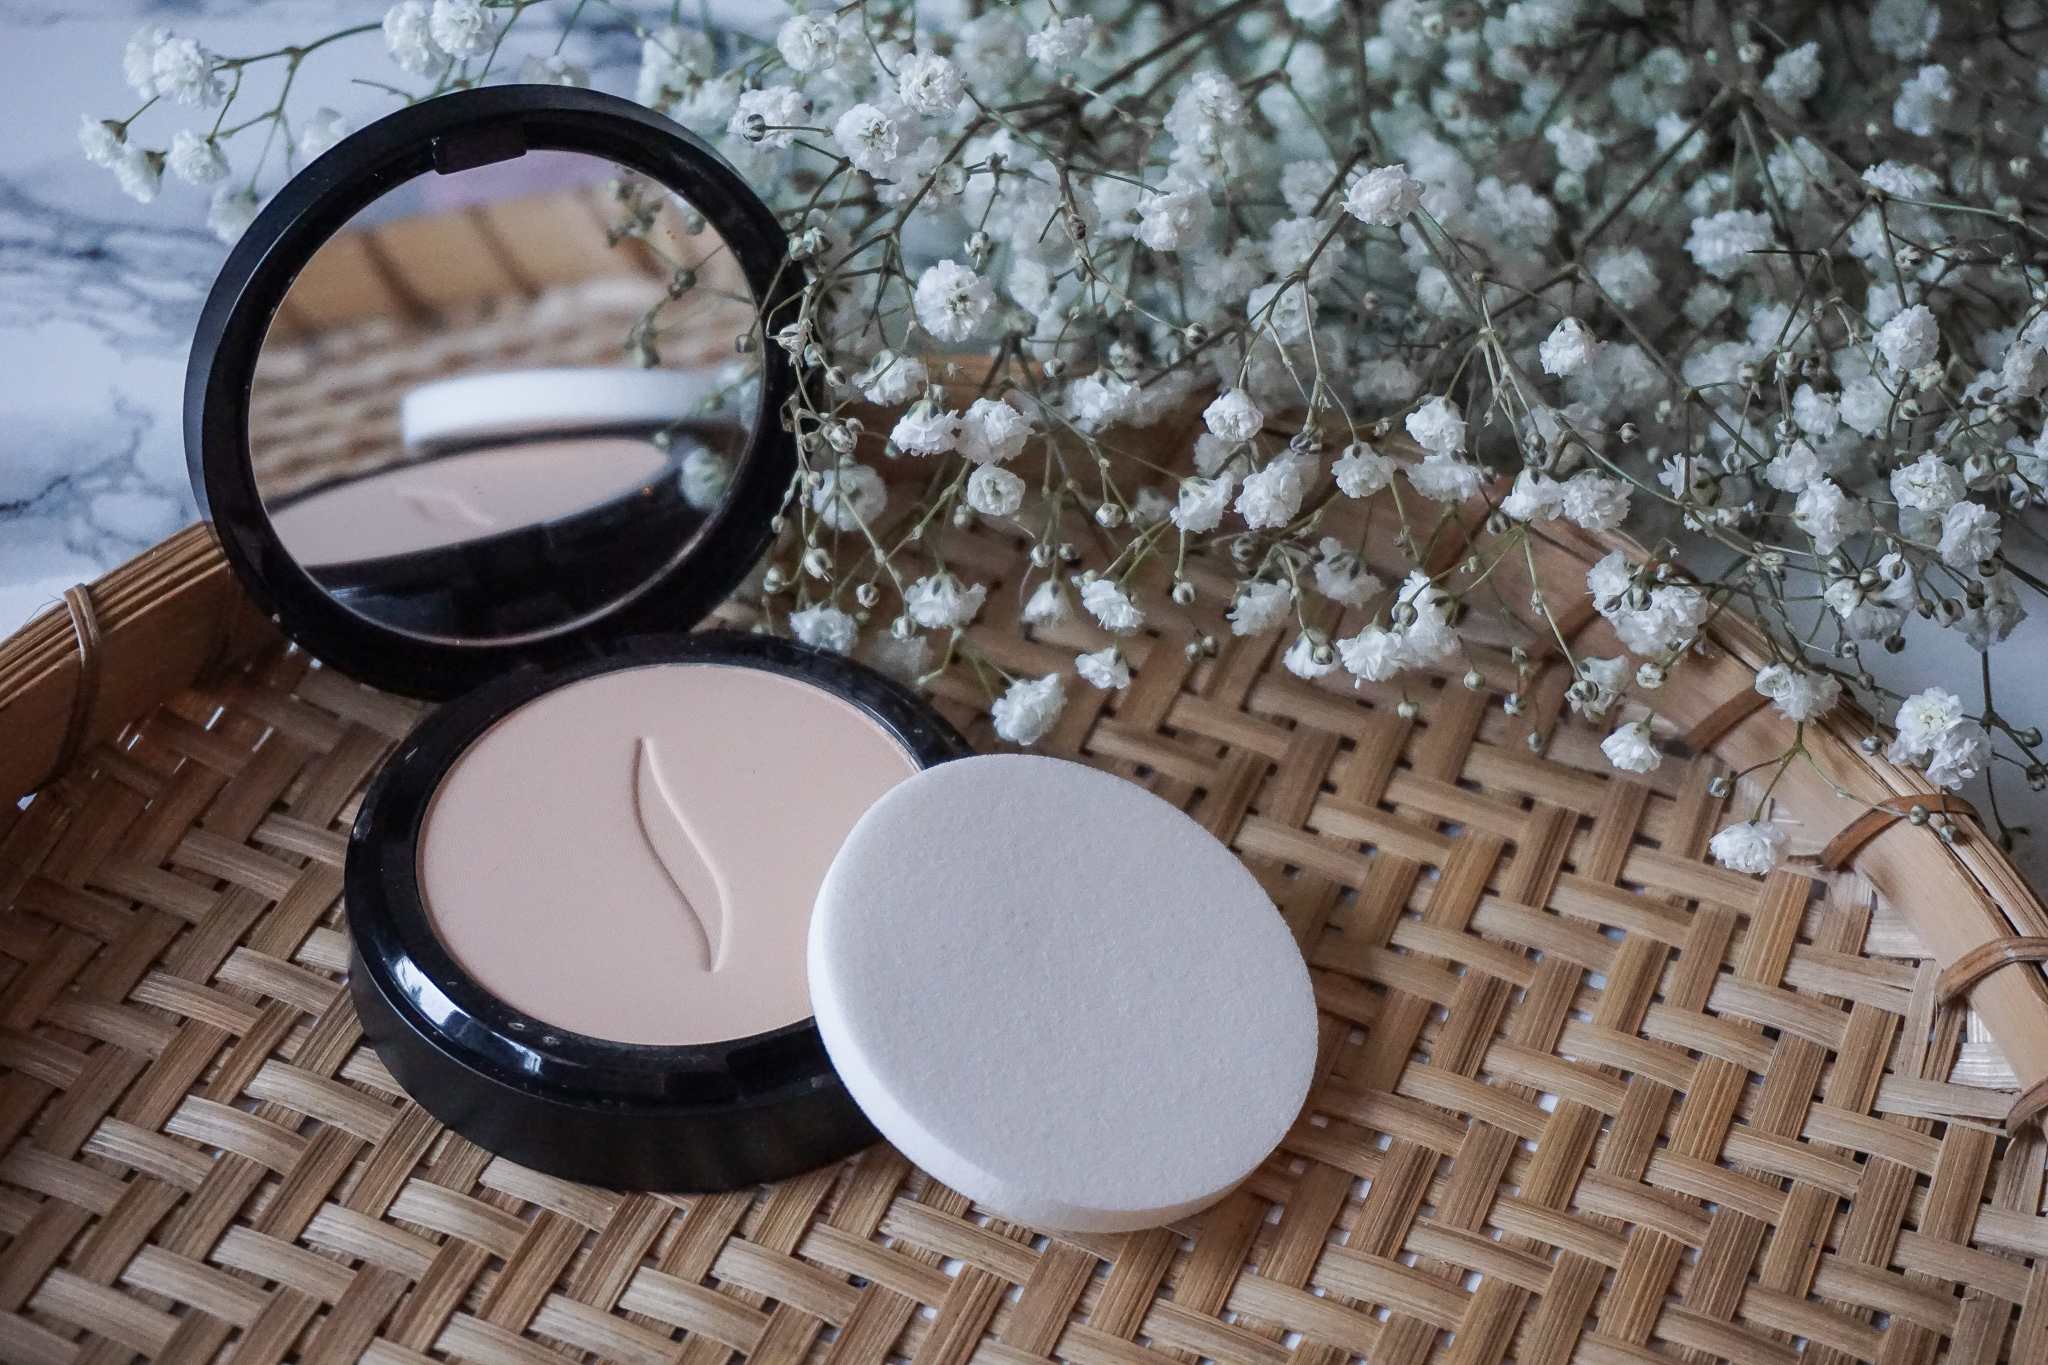 Sephora Matte Perfection Powder Foundation Review The Chic Advocate